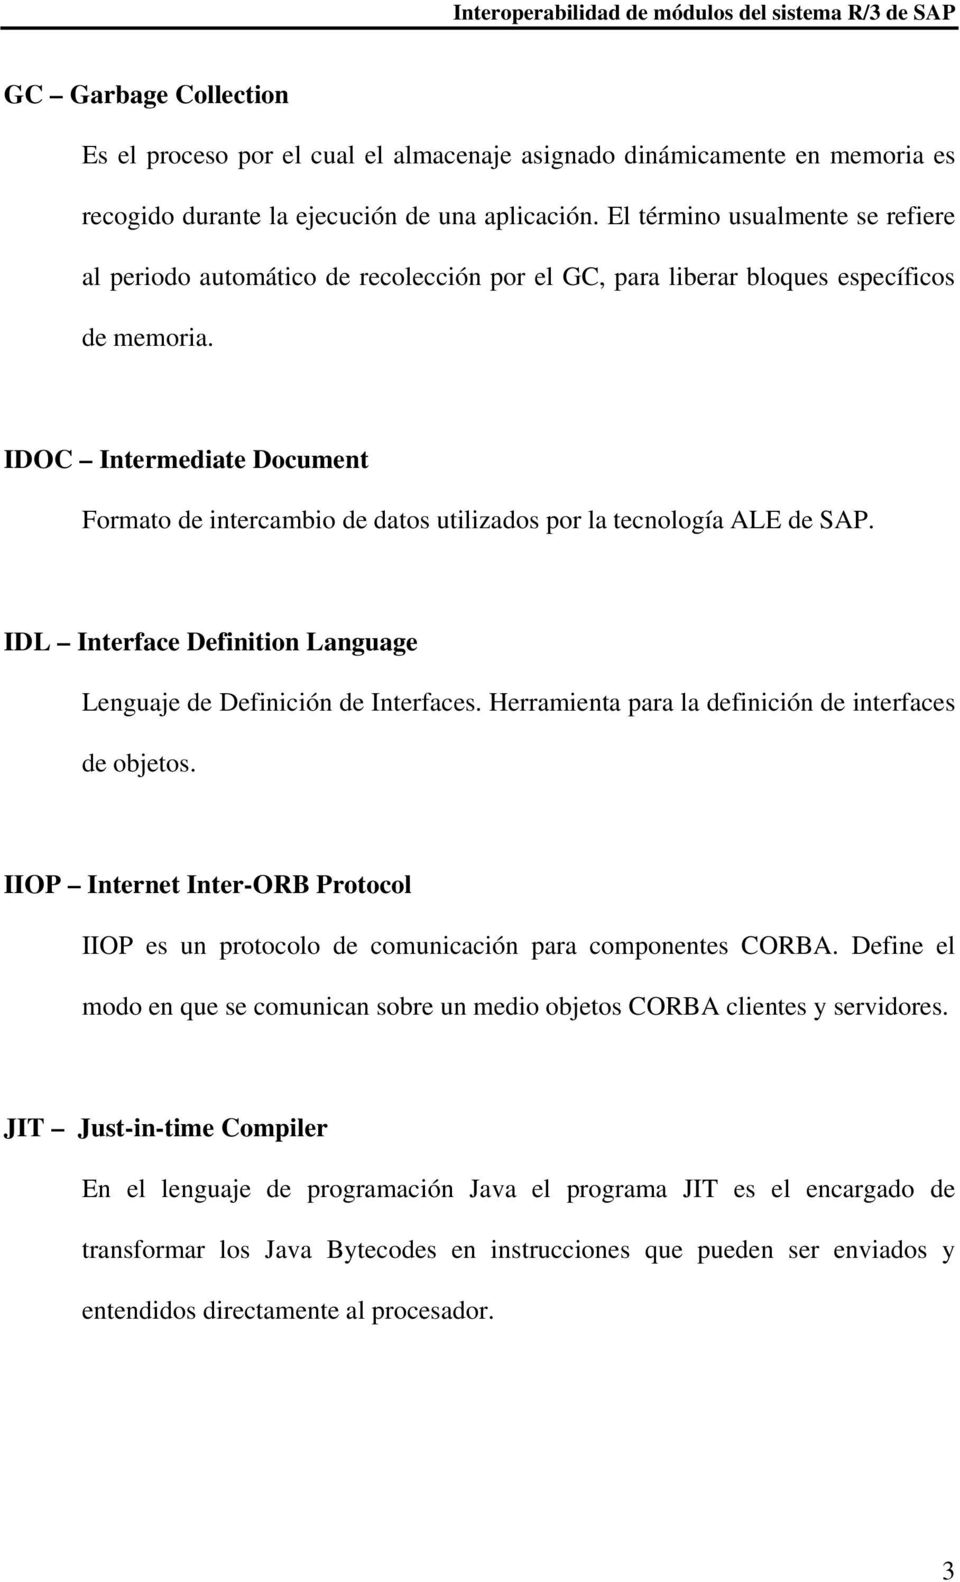 IDOC Intermediate Document Formato de intercambio de datos utilizados por la tecnología ALE de SAP. IDL Interface Definition Language Lenguaje de Definición de Interfaces.